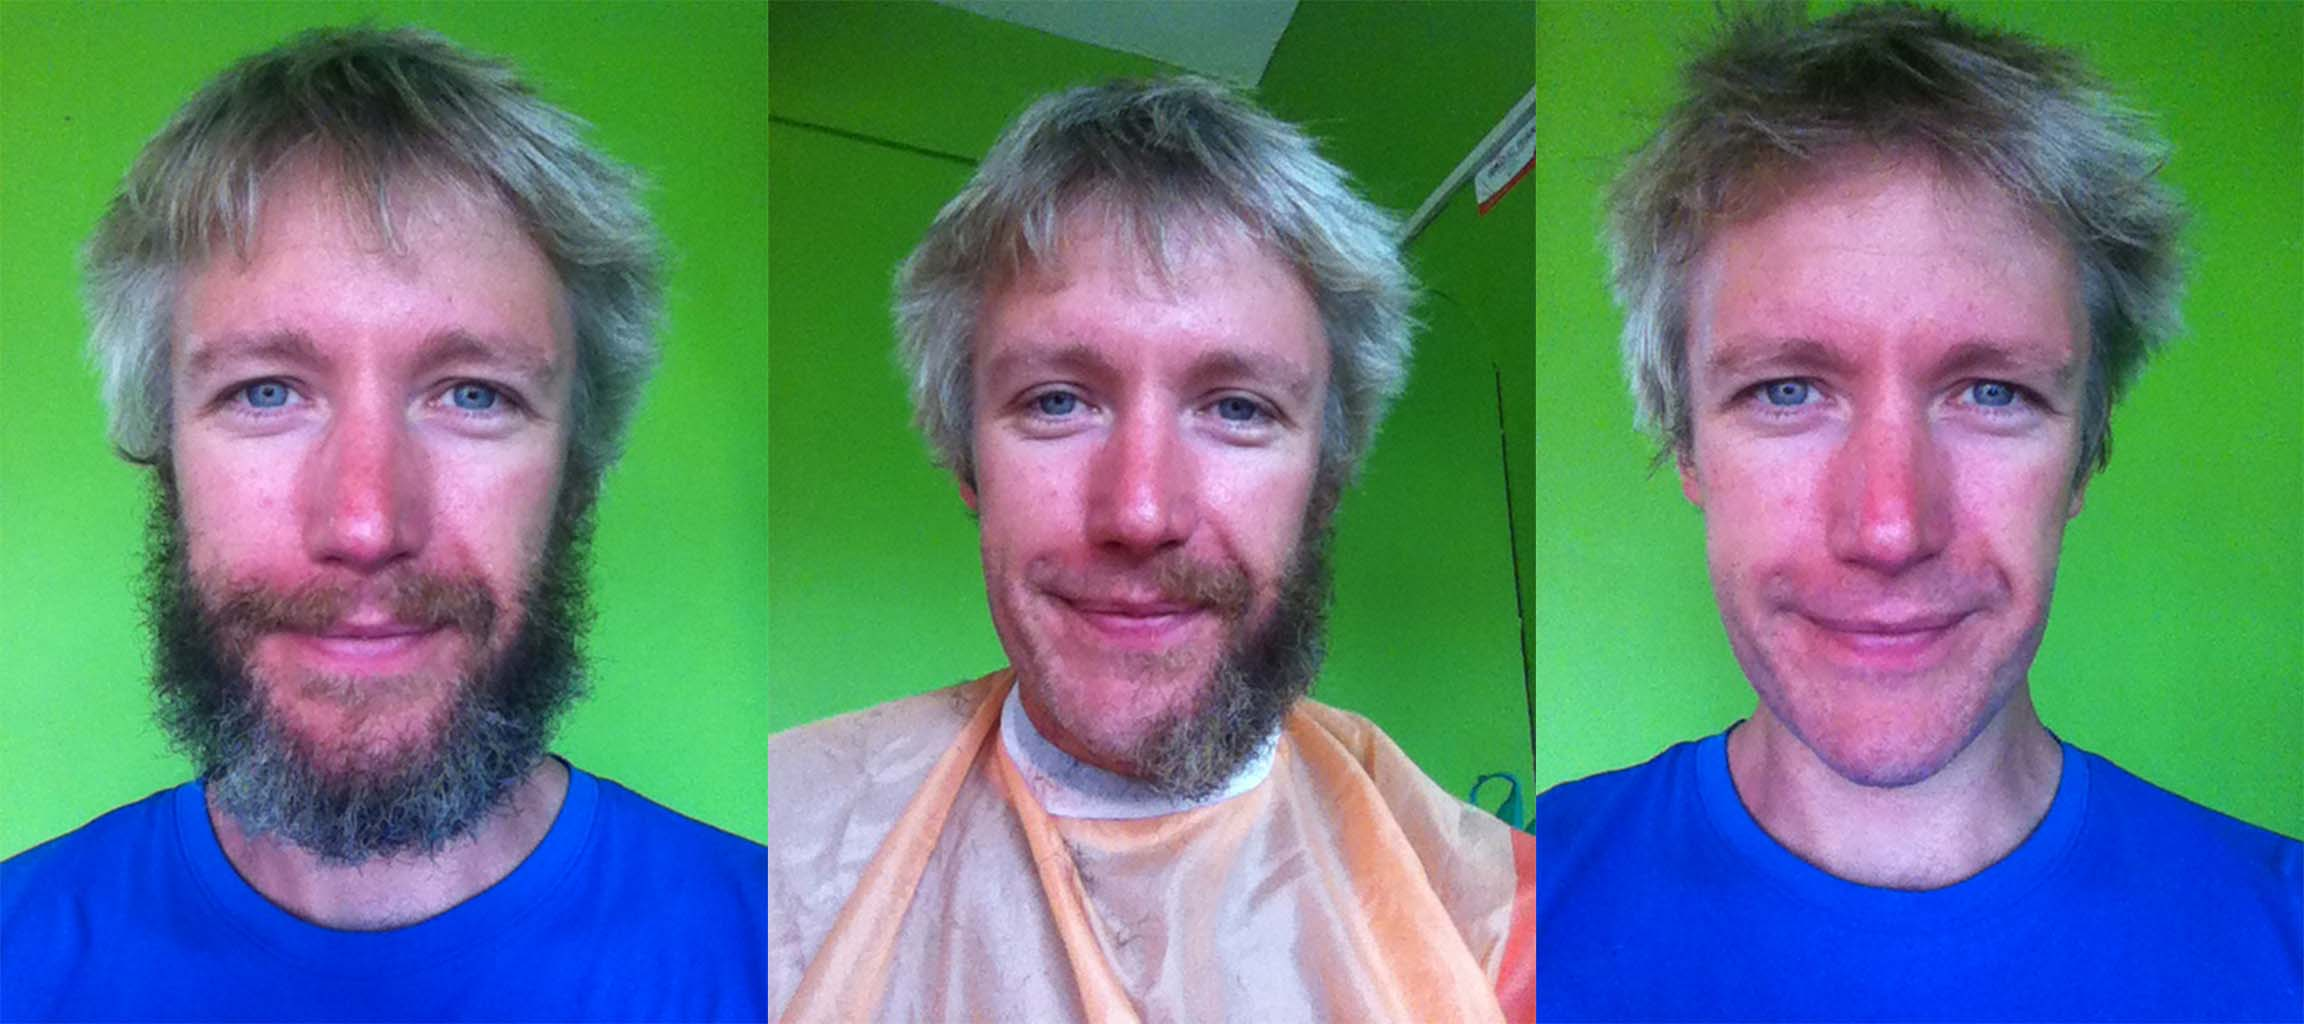 The Cairo to Cape Town adventurer's beard is no longer!